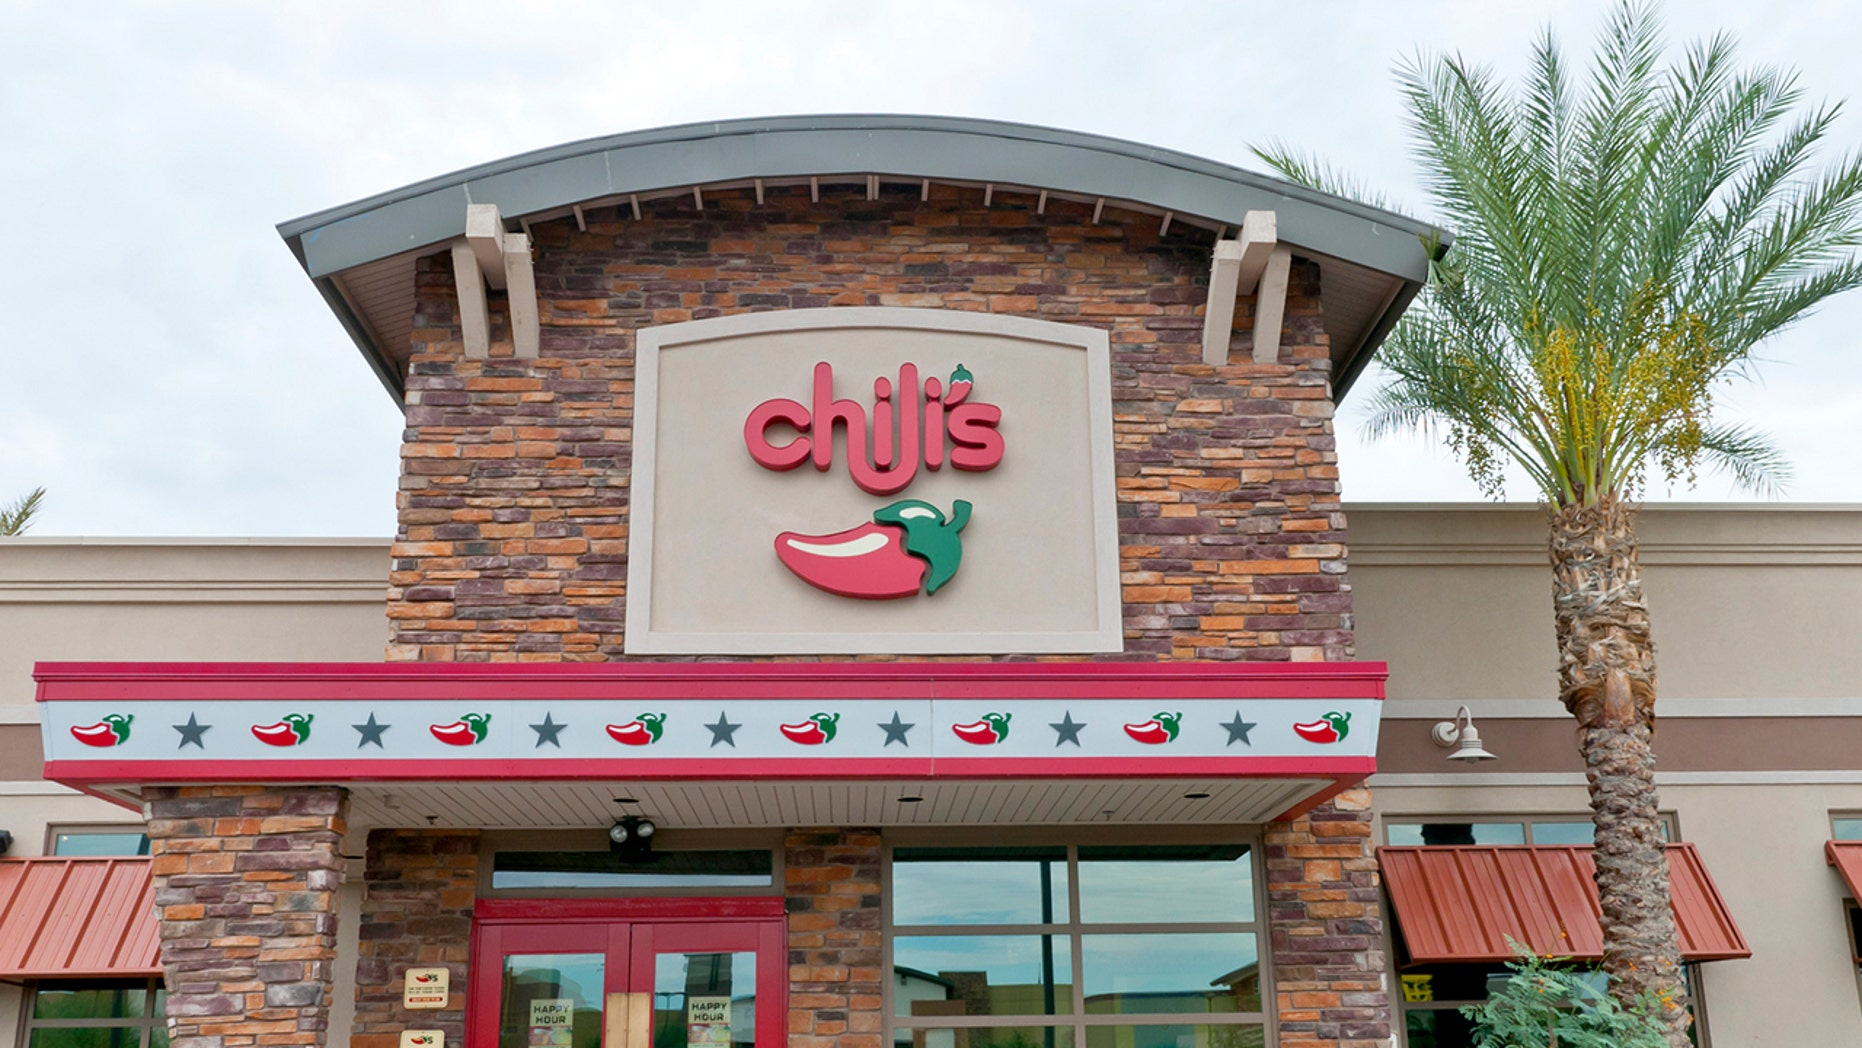 Chili's has entered the political landscape with one of its latest tweets.